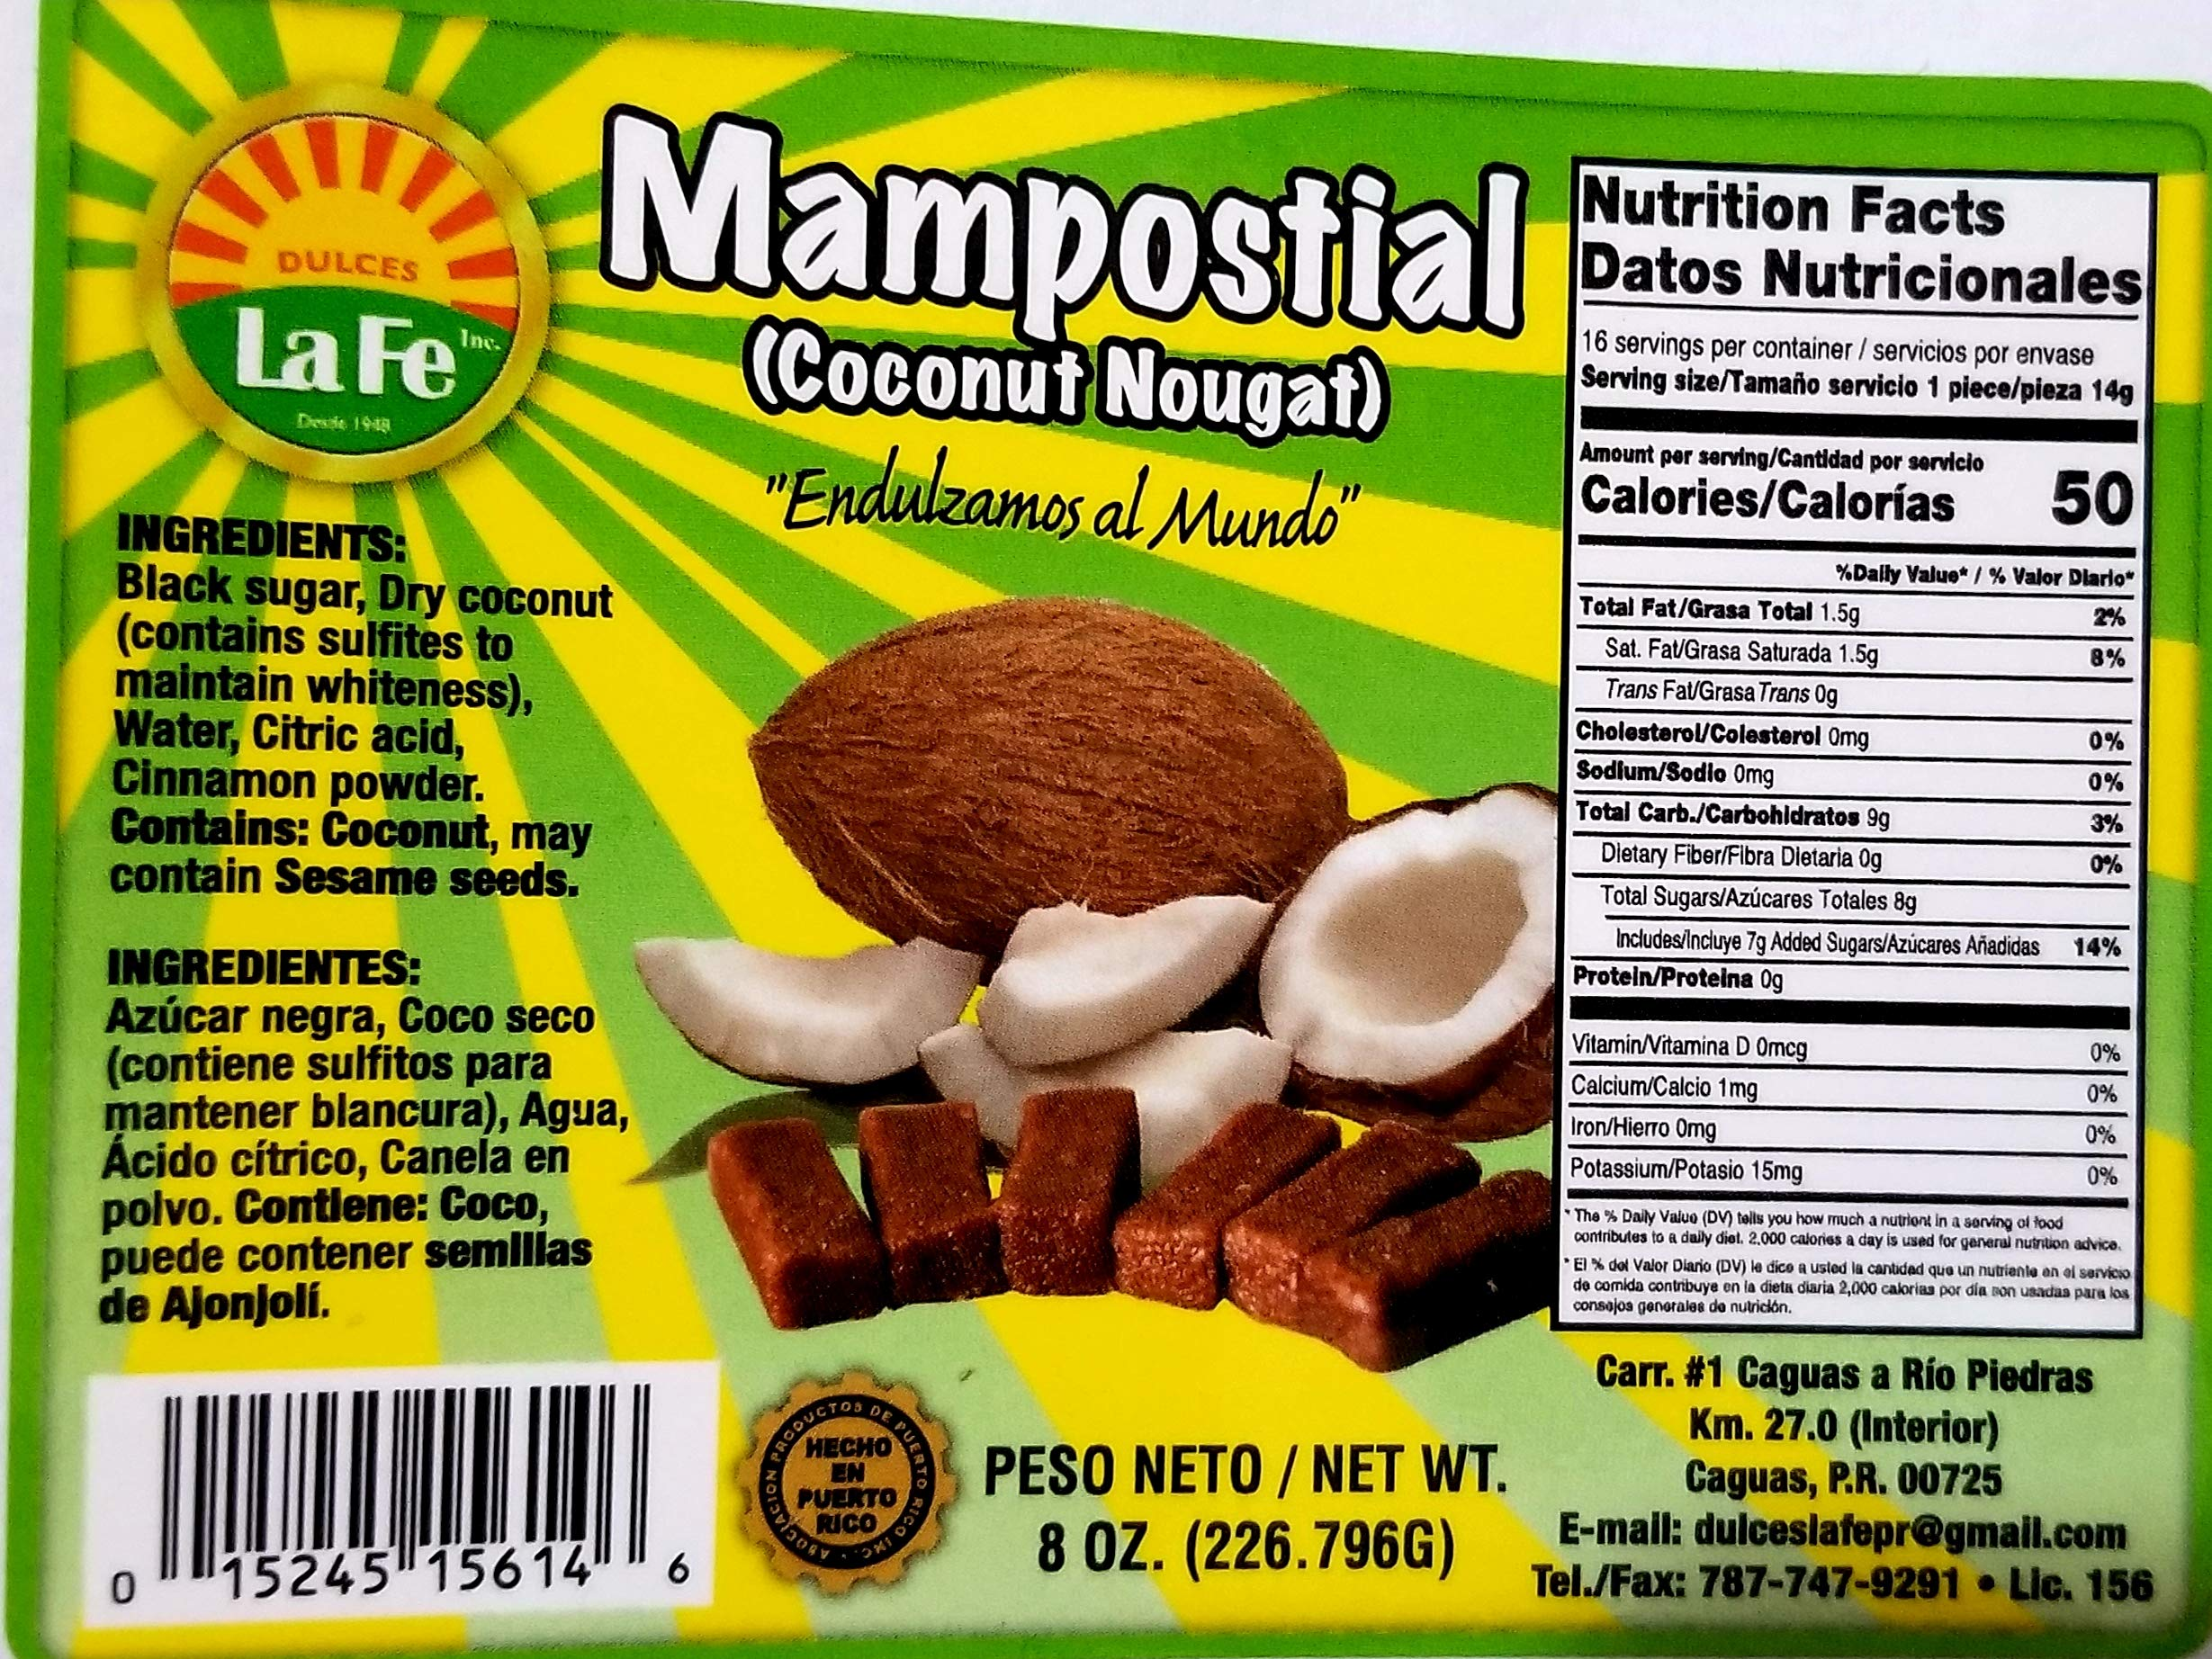 Mampostiales (Coconut Toffee) By Fabrica De Dulces La Fe (18 Individual Packaged Units